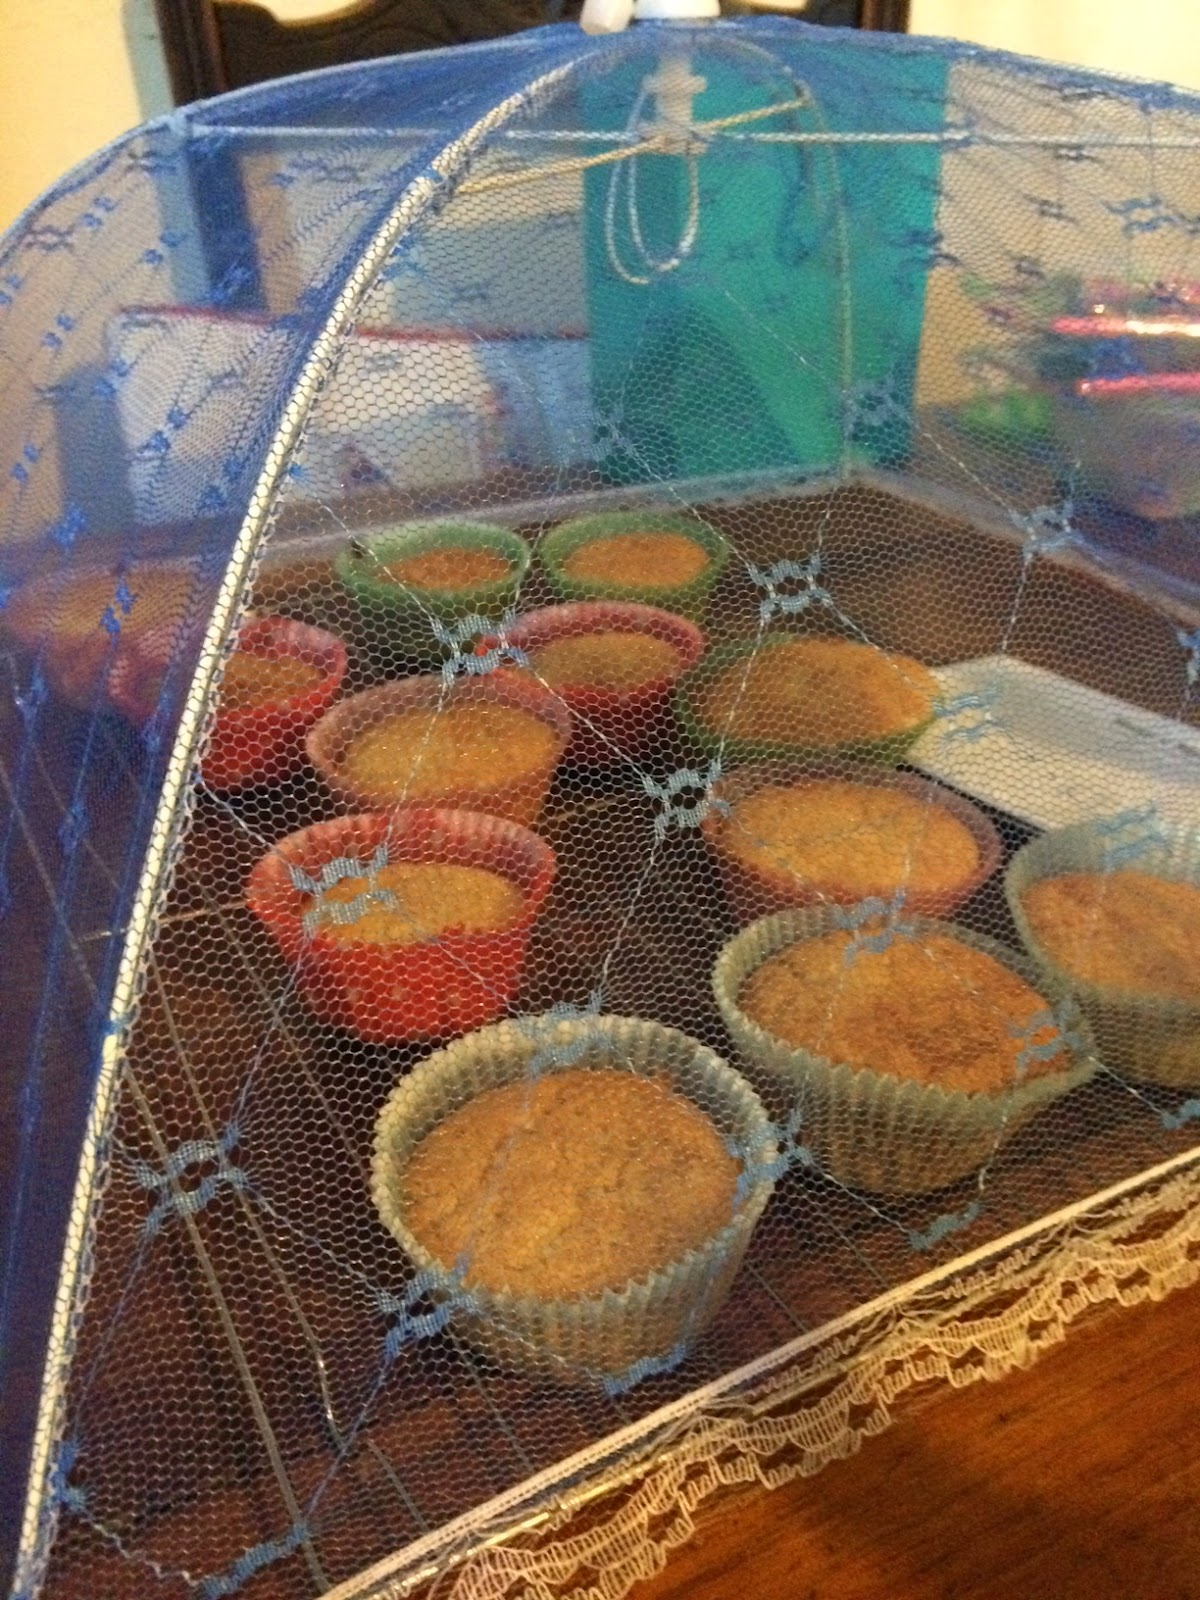 home made fairy cakes, cupcakes under pop up fly screen